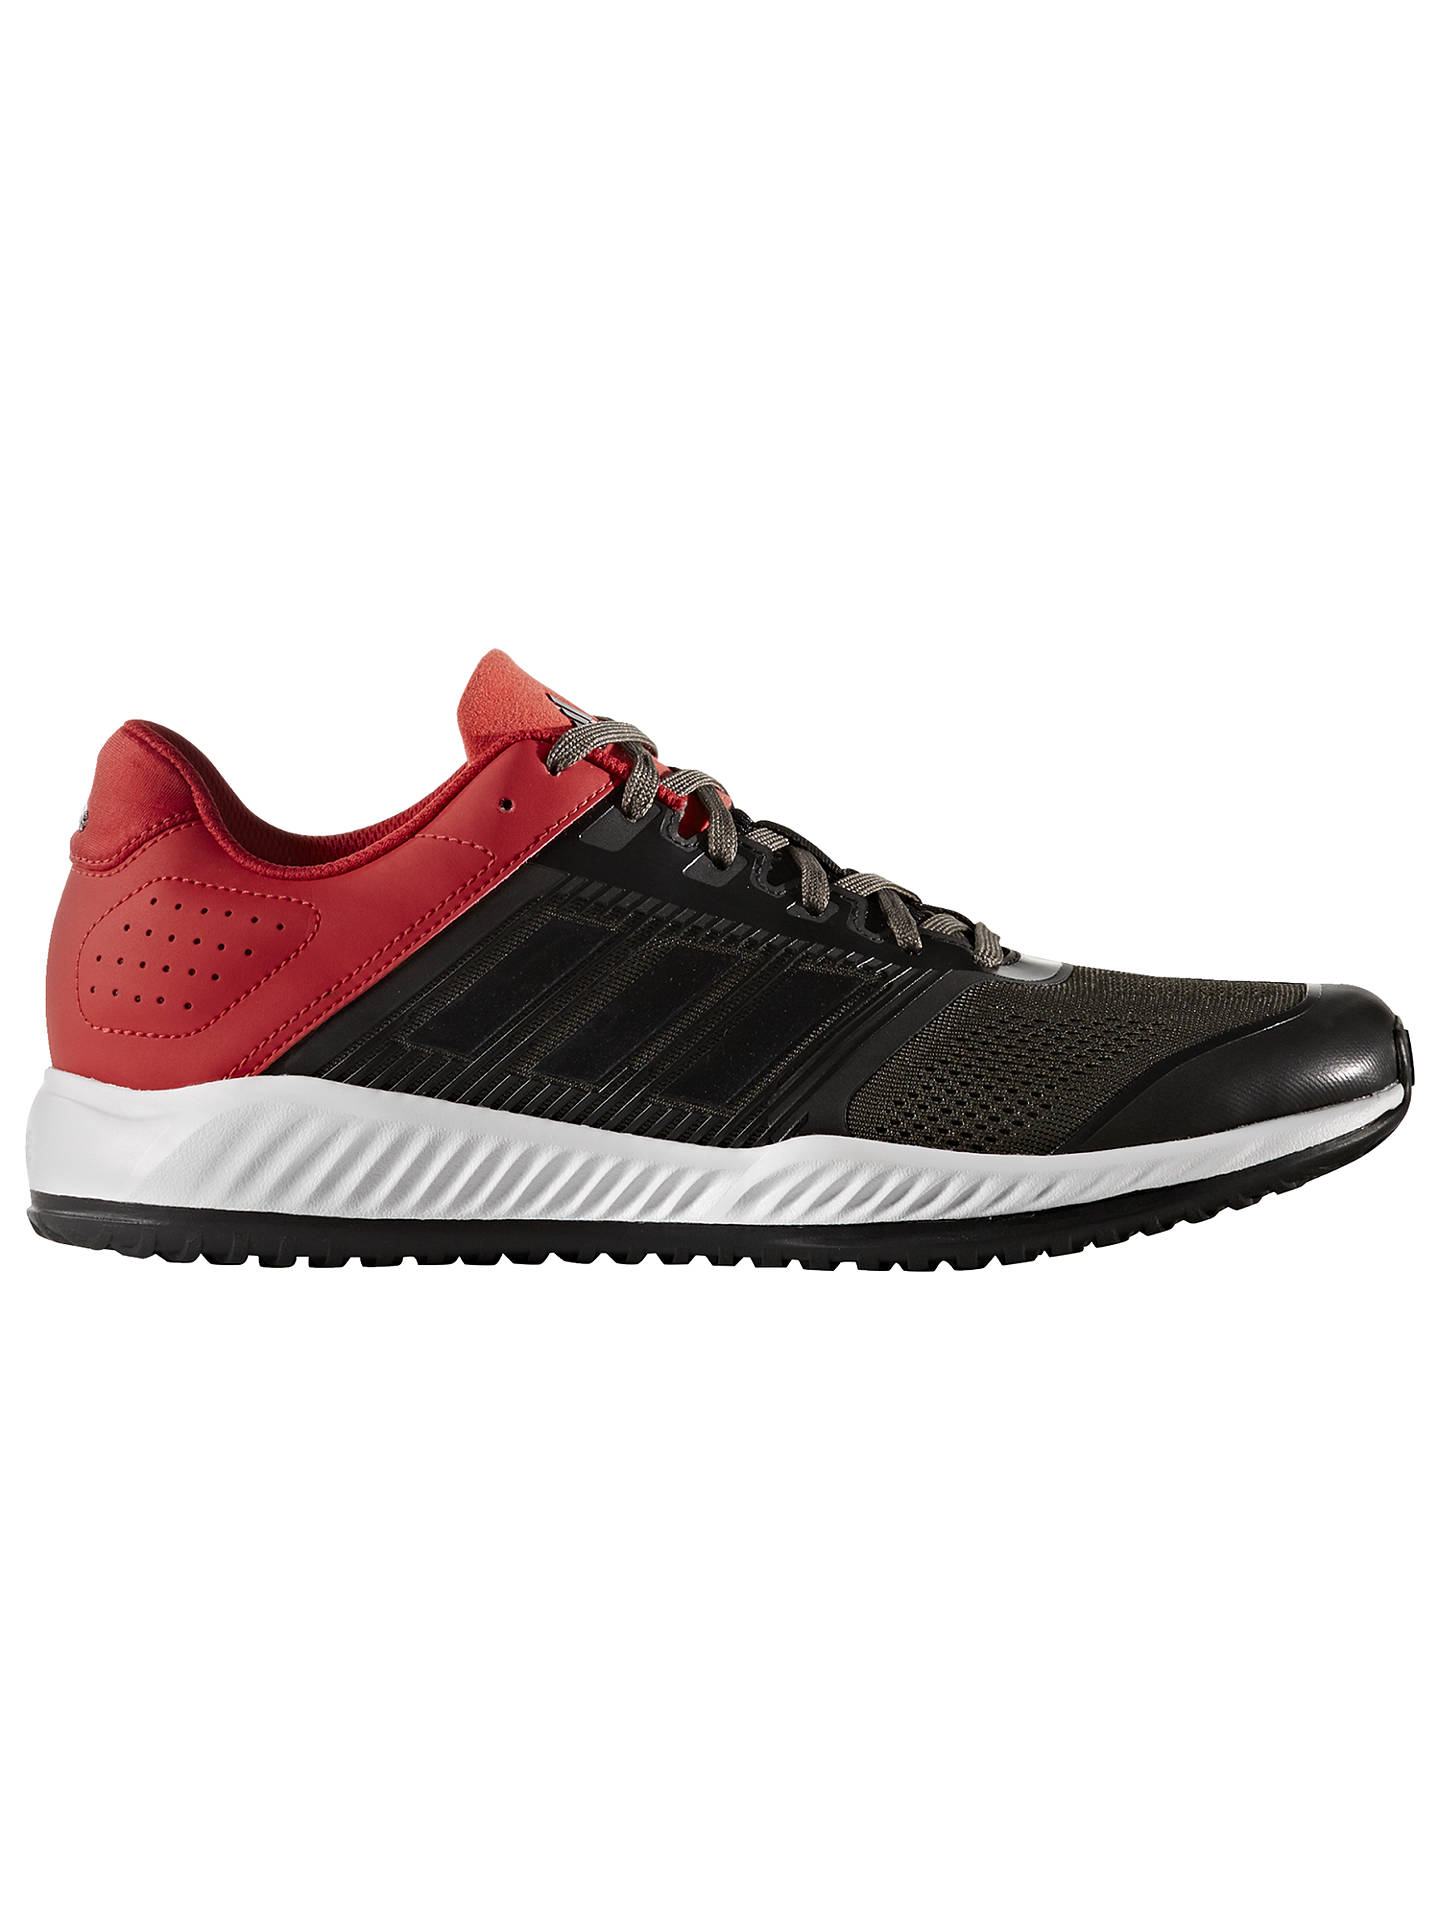 f0ce0bd8d Buy Adidas ZG Bounce Men s Cross Trainers